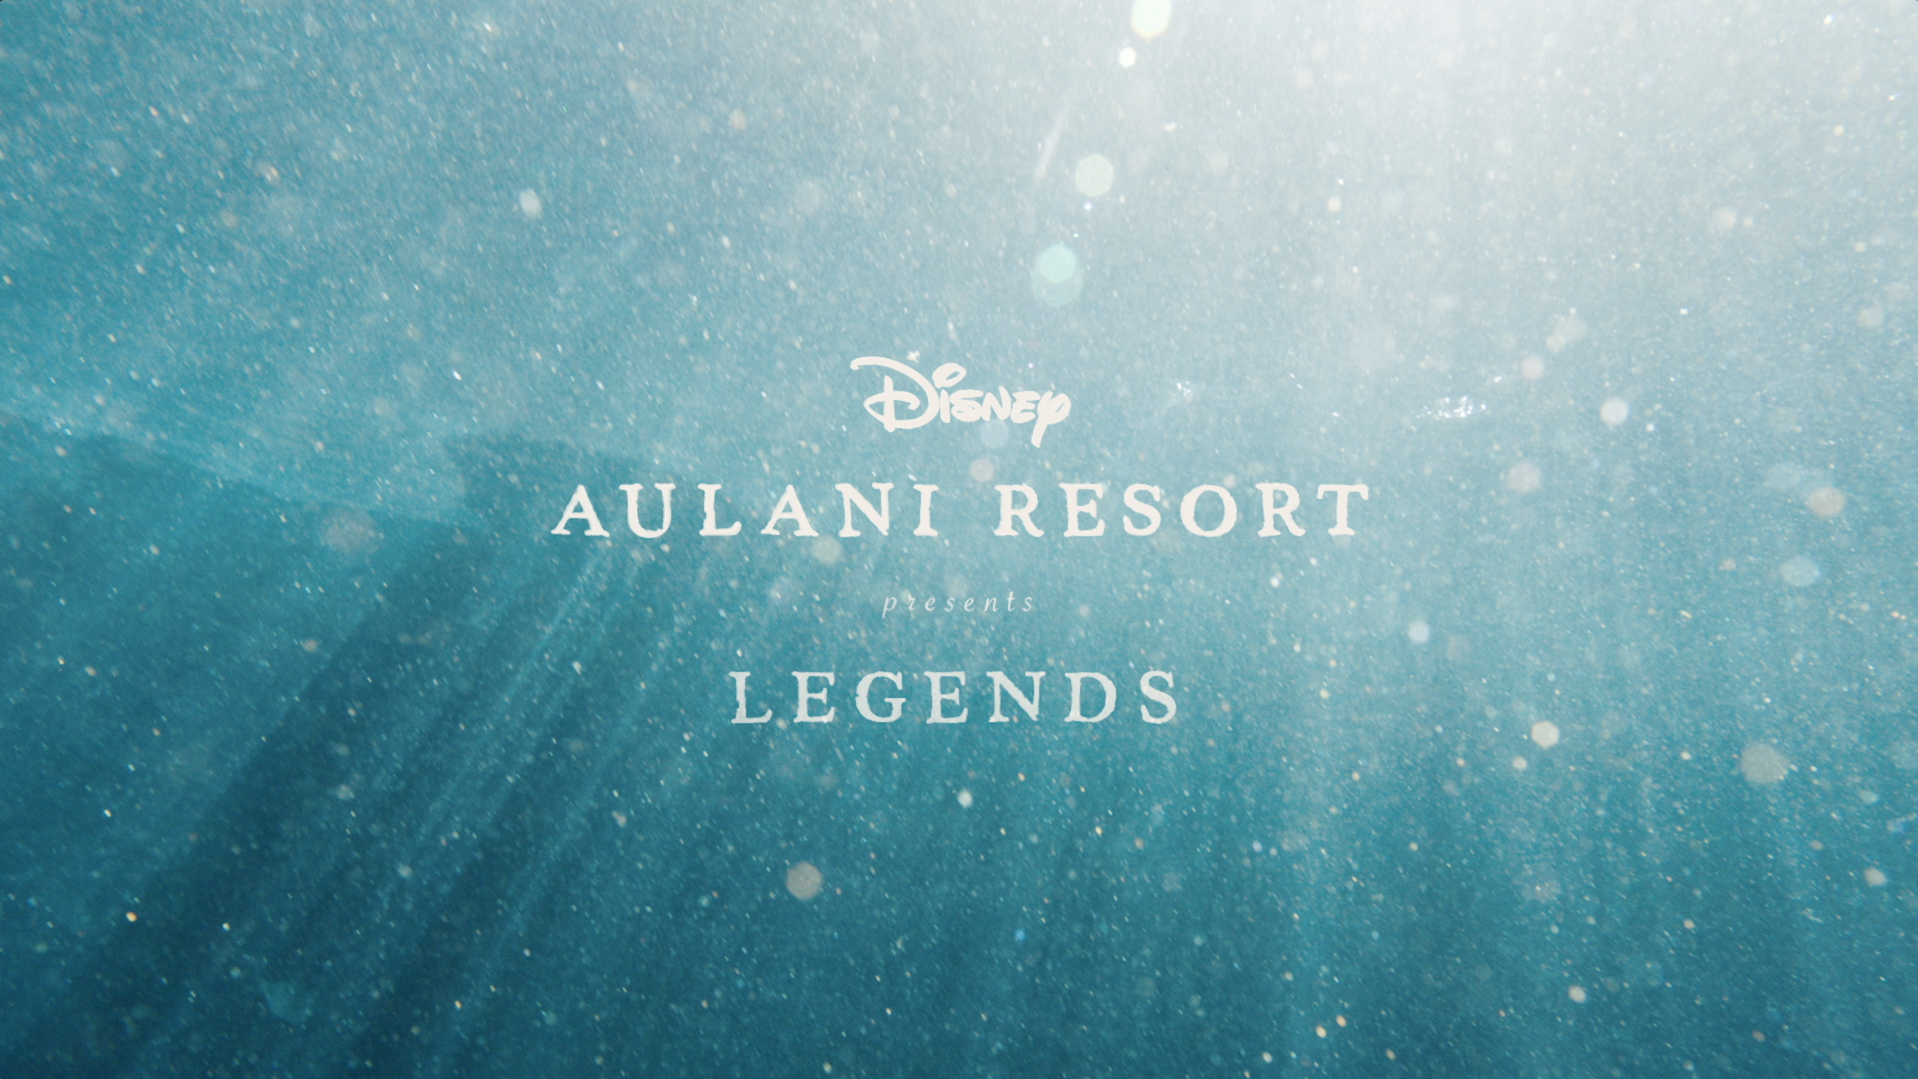 Aulani - Legends